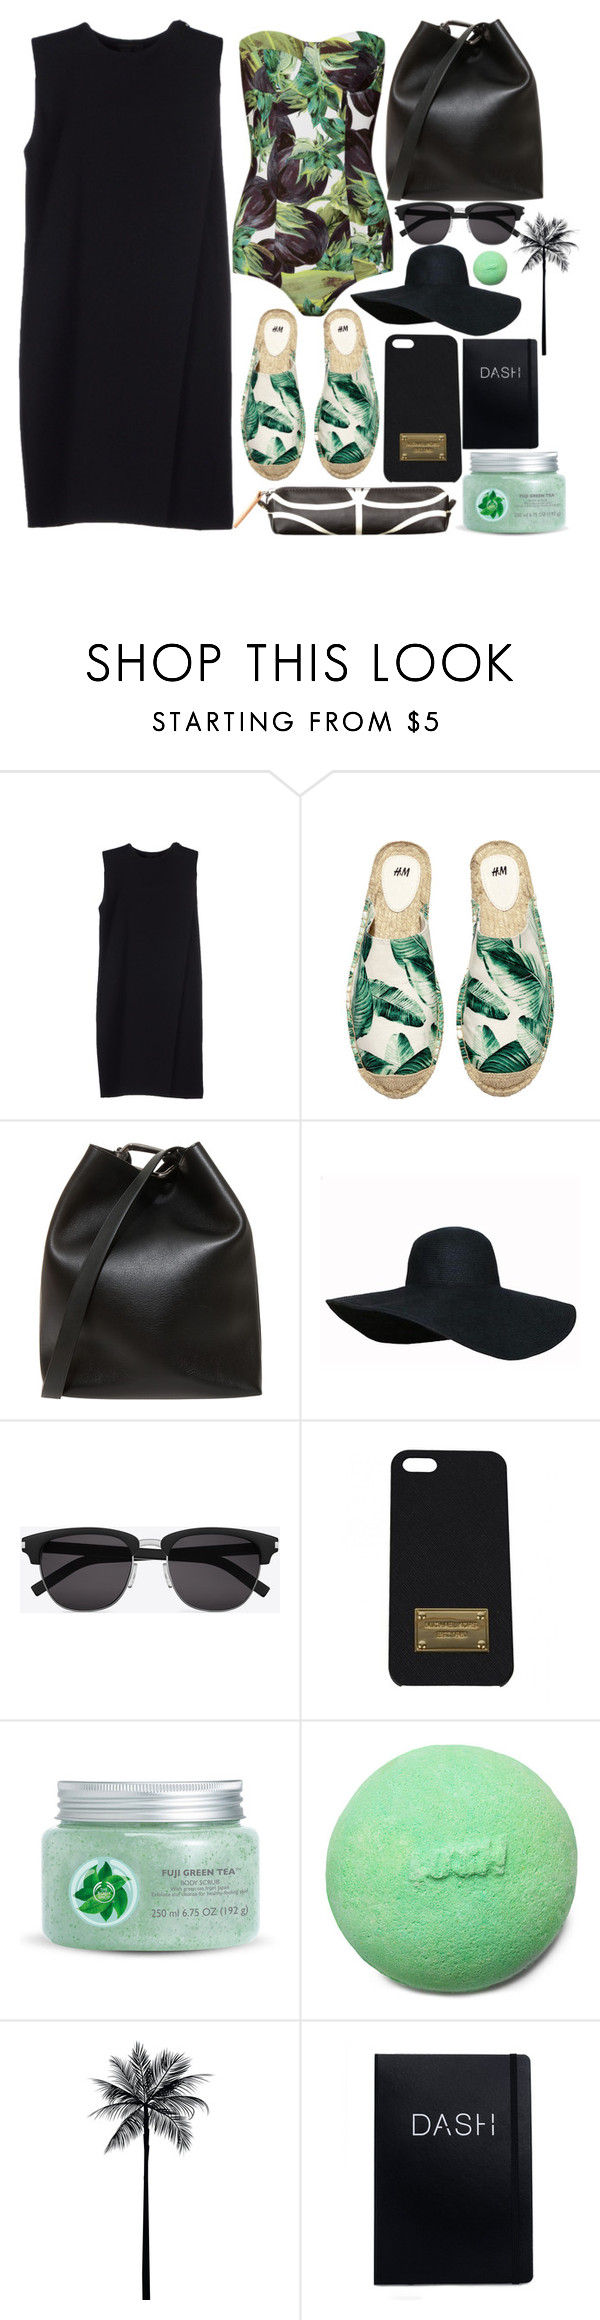 """#96"" by mikhaylenko-l on Polyvore"